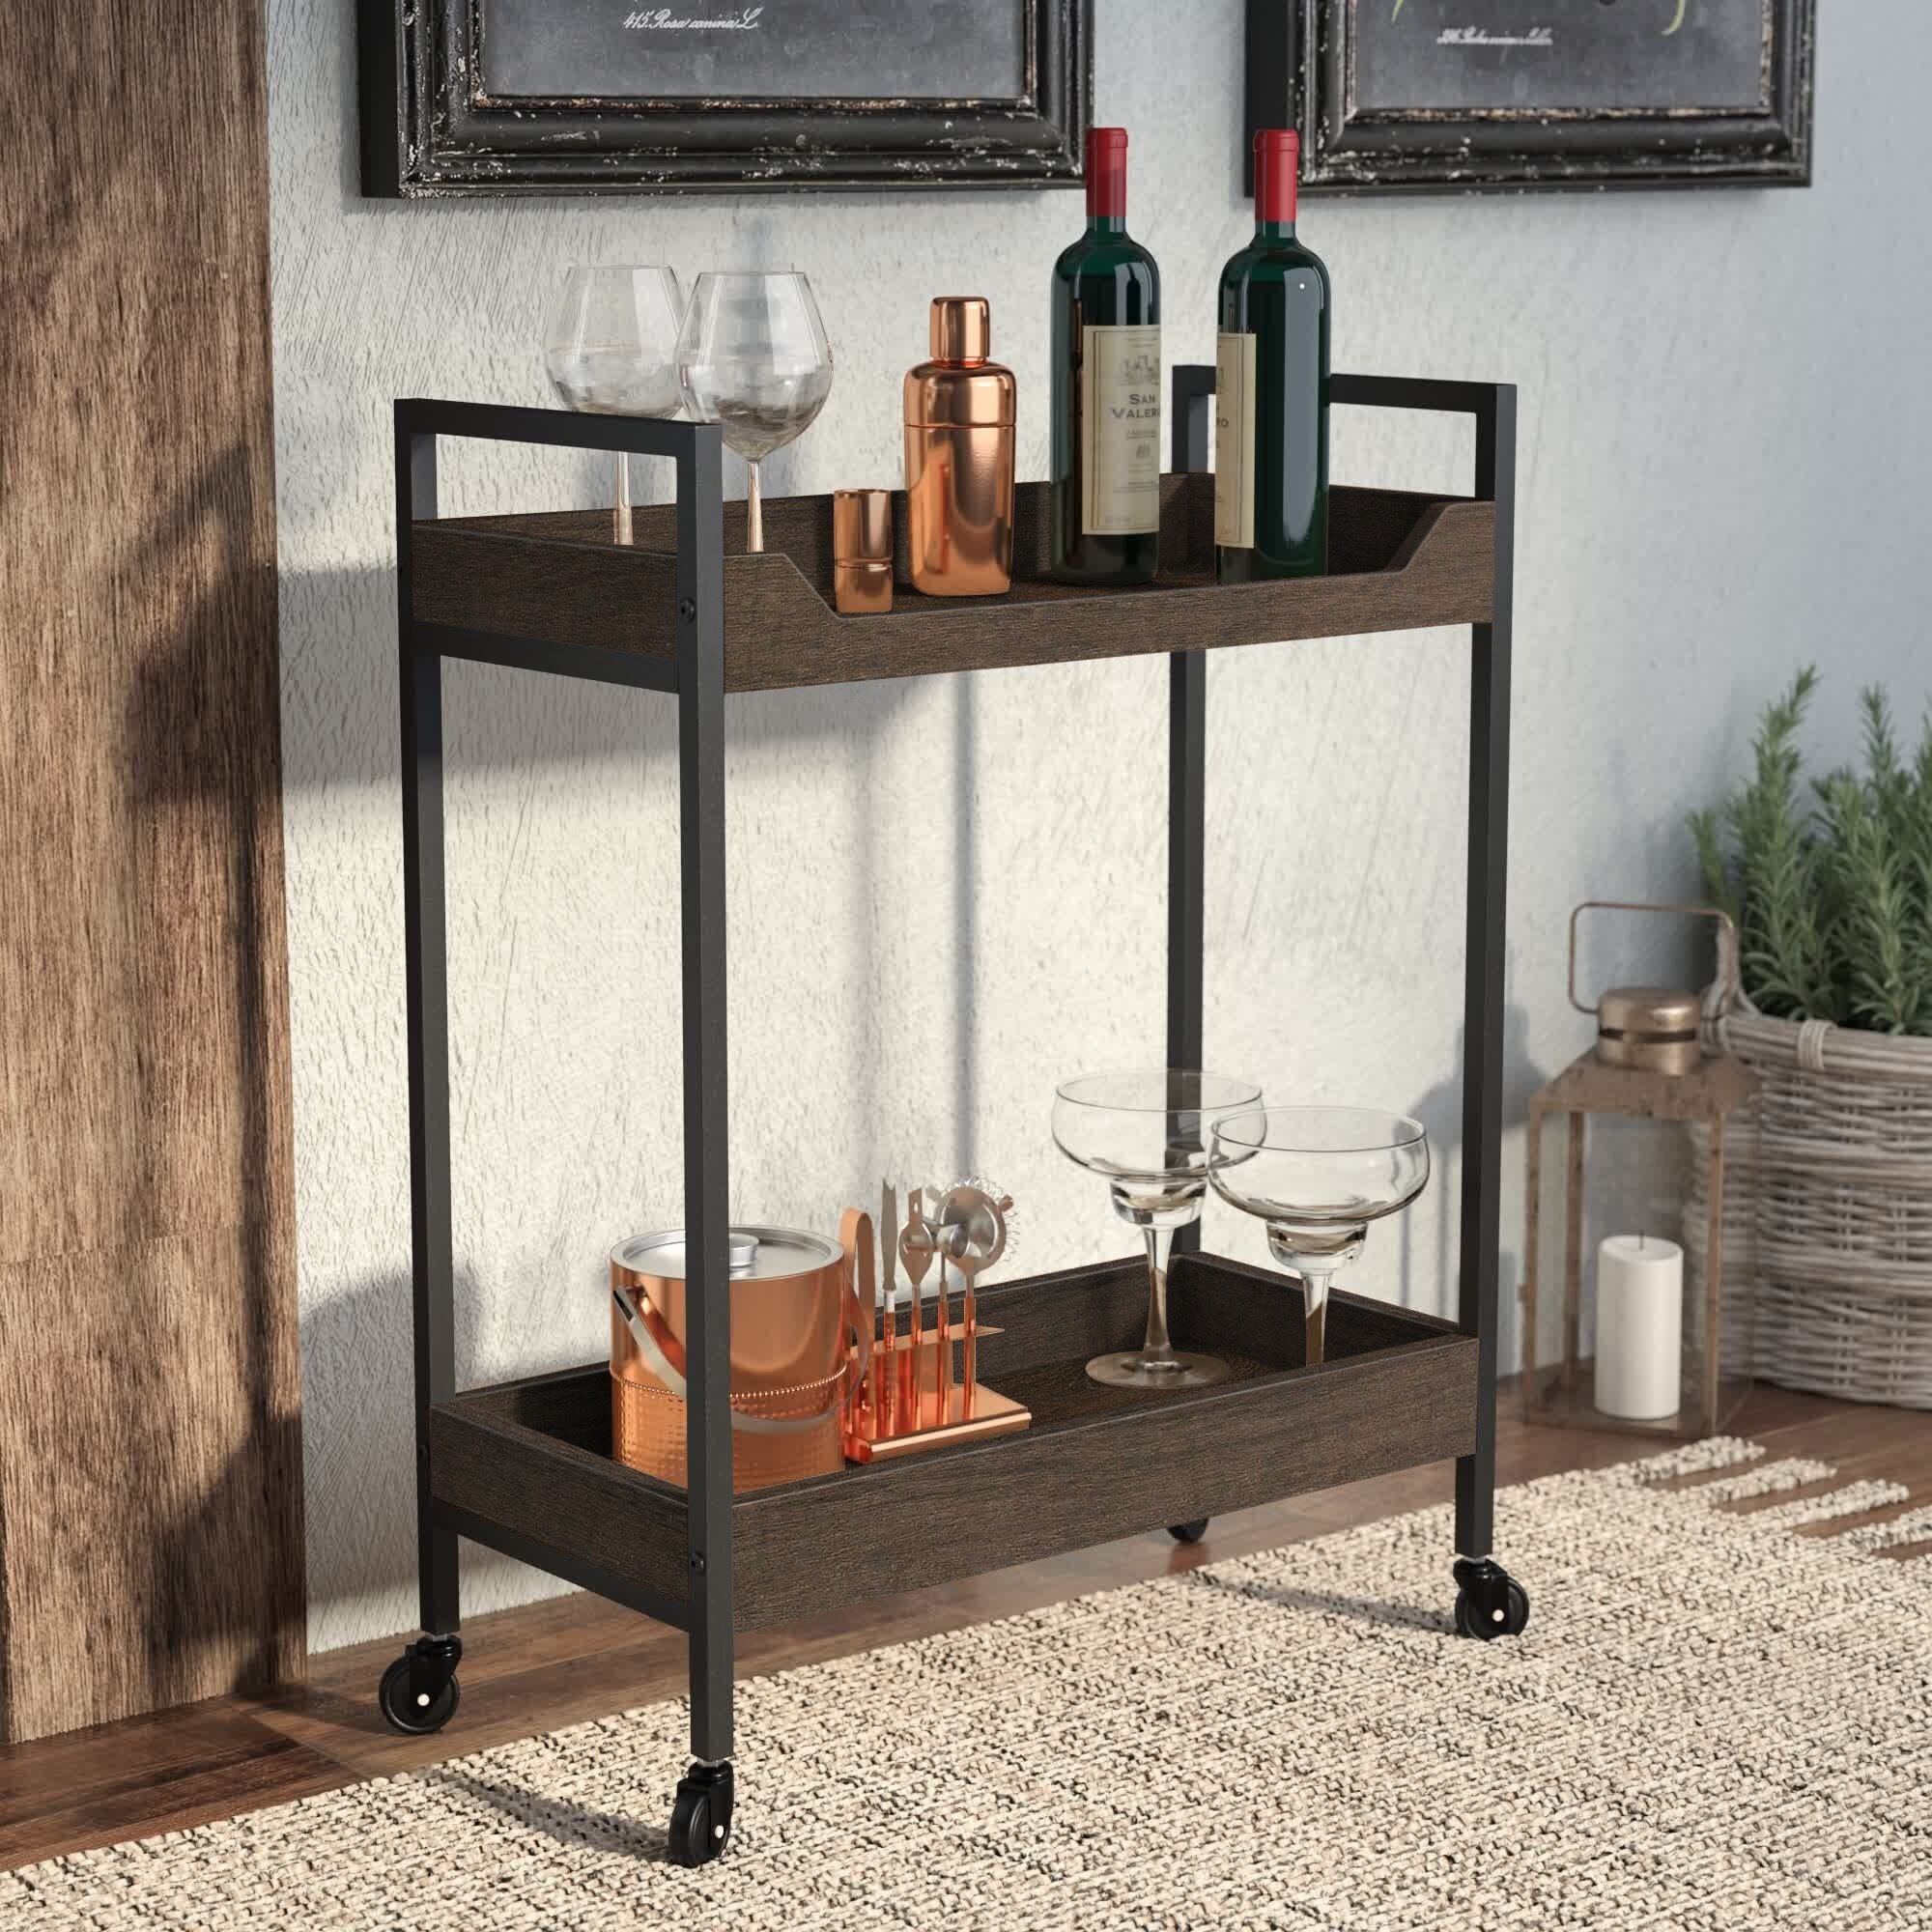 the two-tier rolling bar cart in an espresso finish